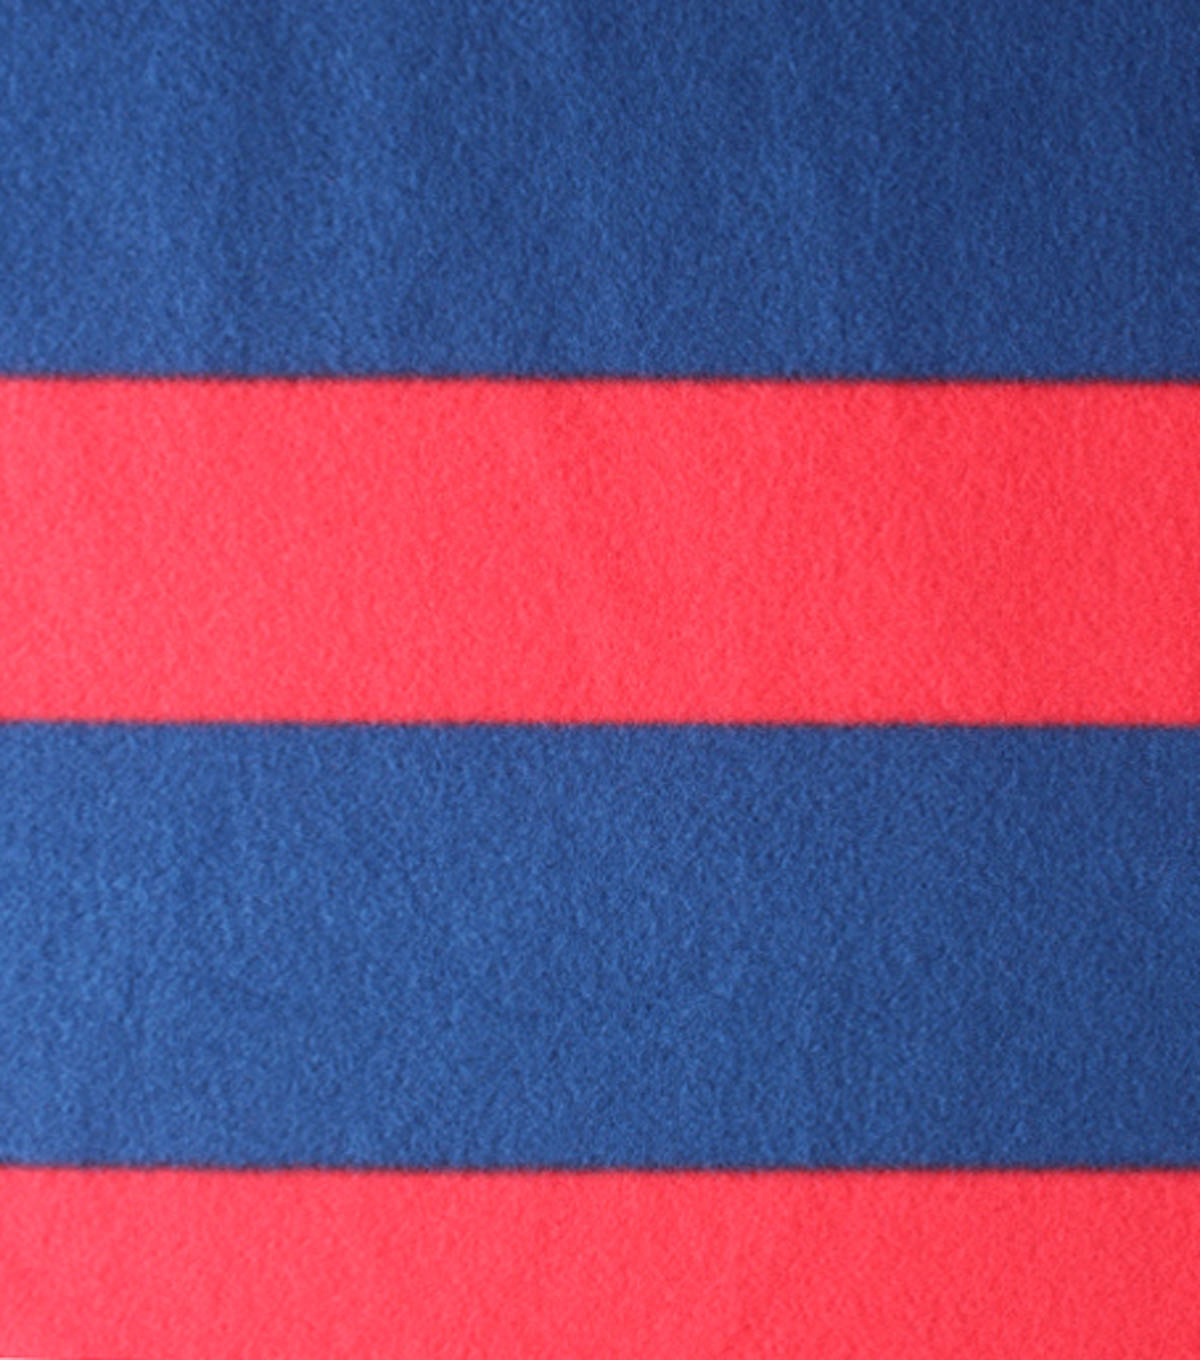 Blizzard Fleece Fabric - Navy Red Rugby Stripe